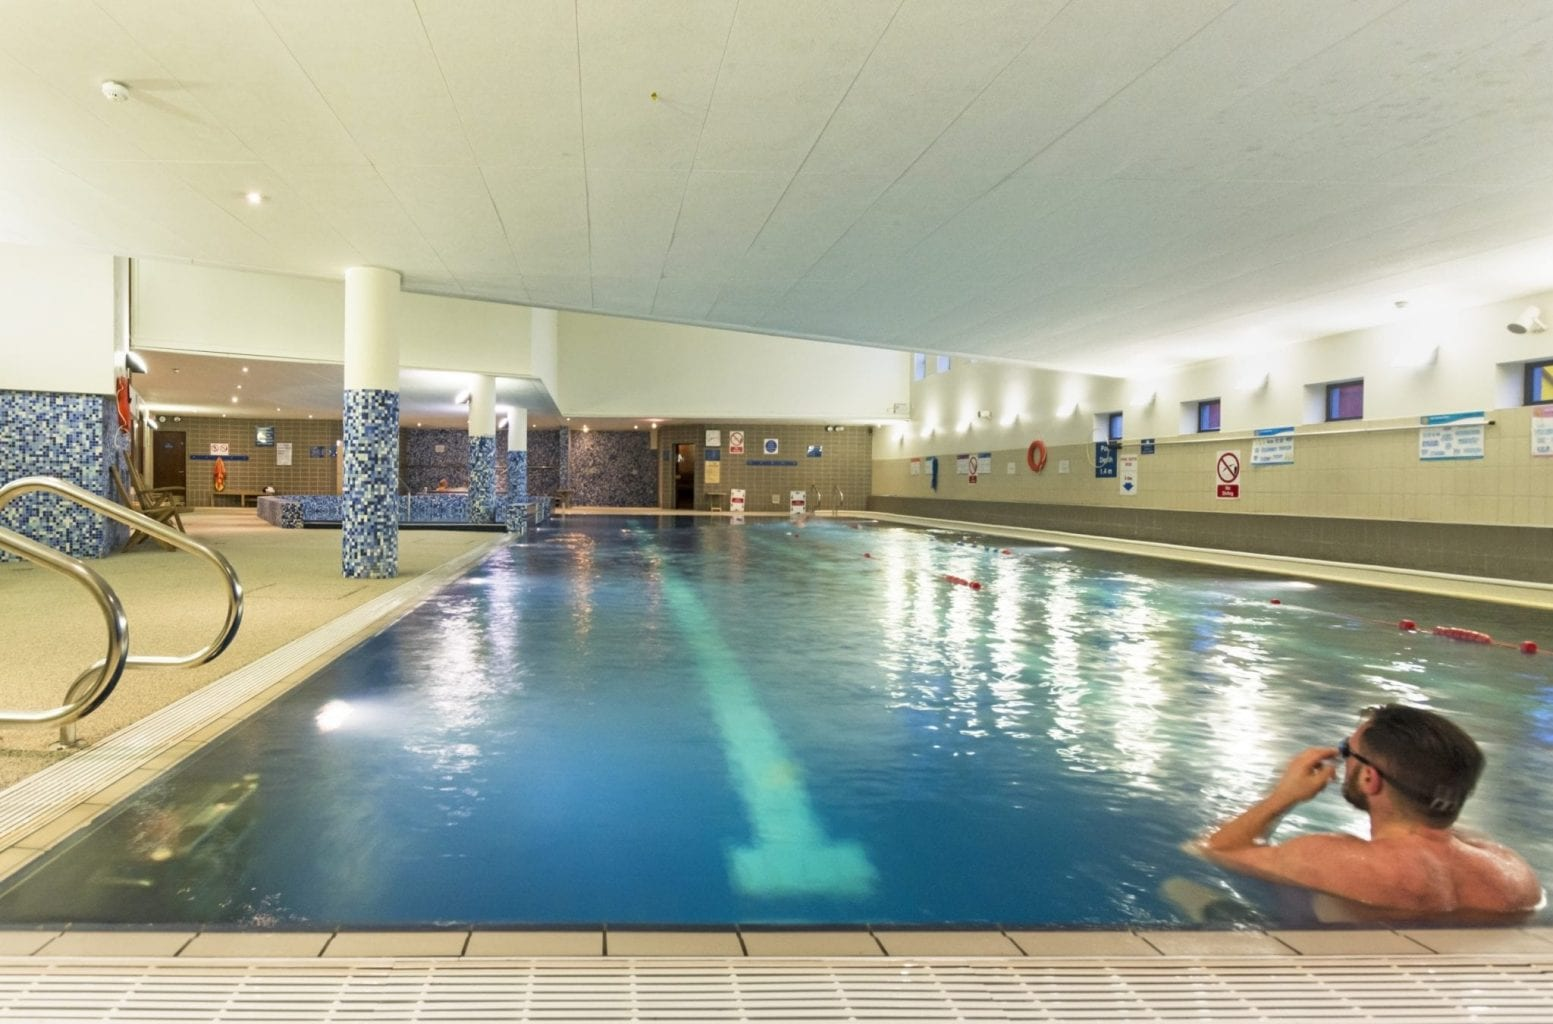 Hotels maldron hotels Swimming pools in dublin city centre